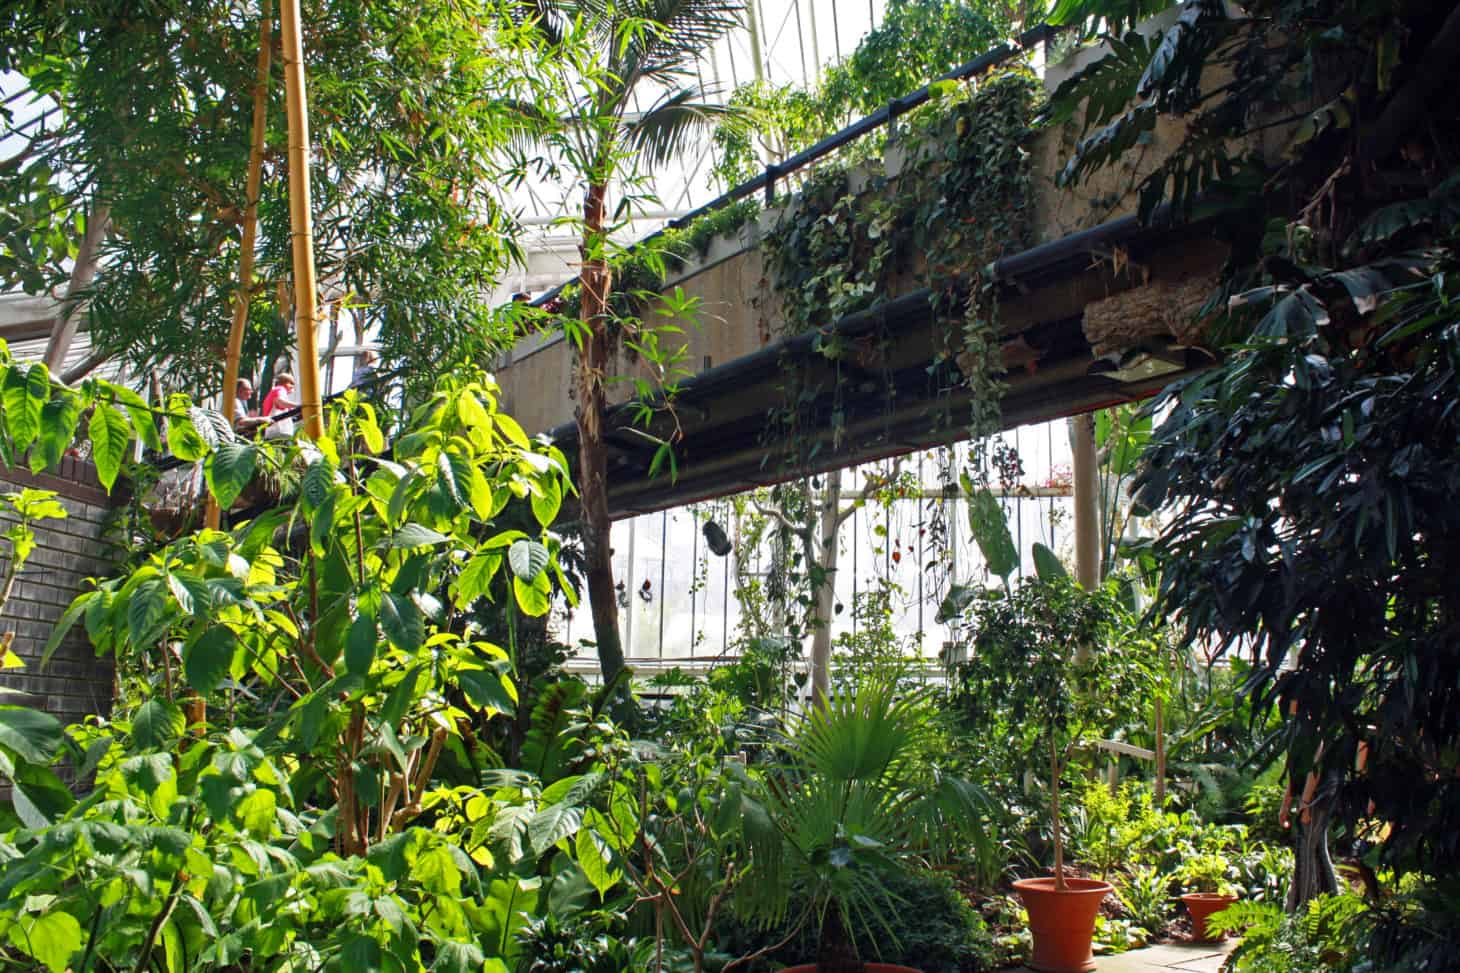 Bridge in Barbican Conservatory, London